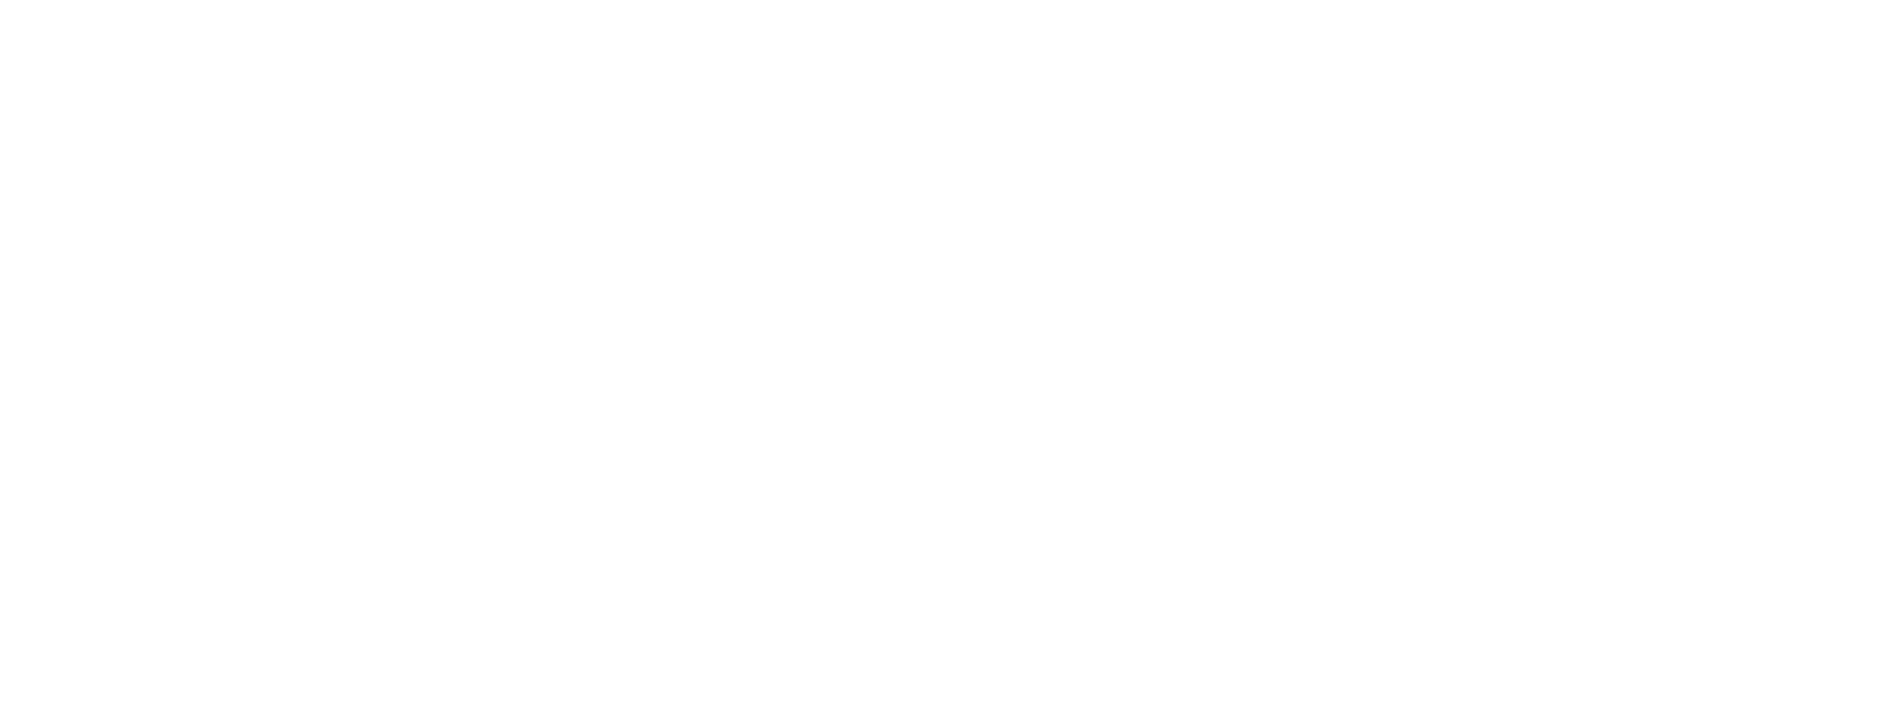 Direct Travel logo no tag white